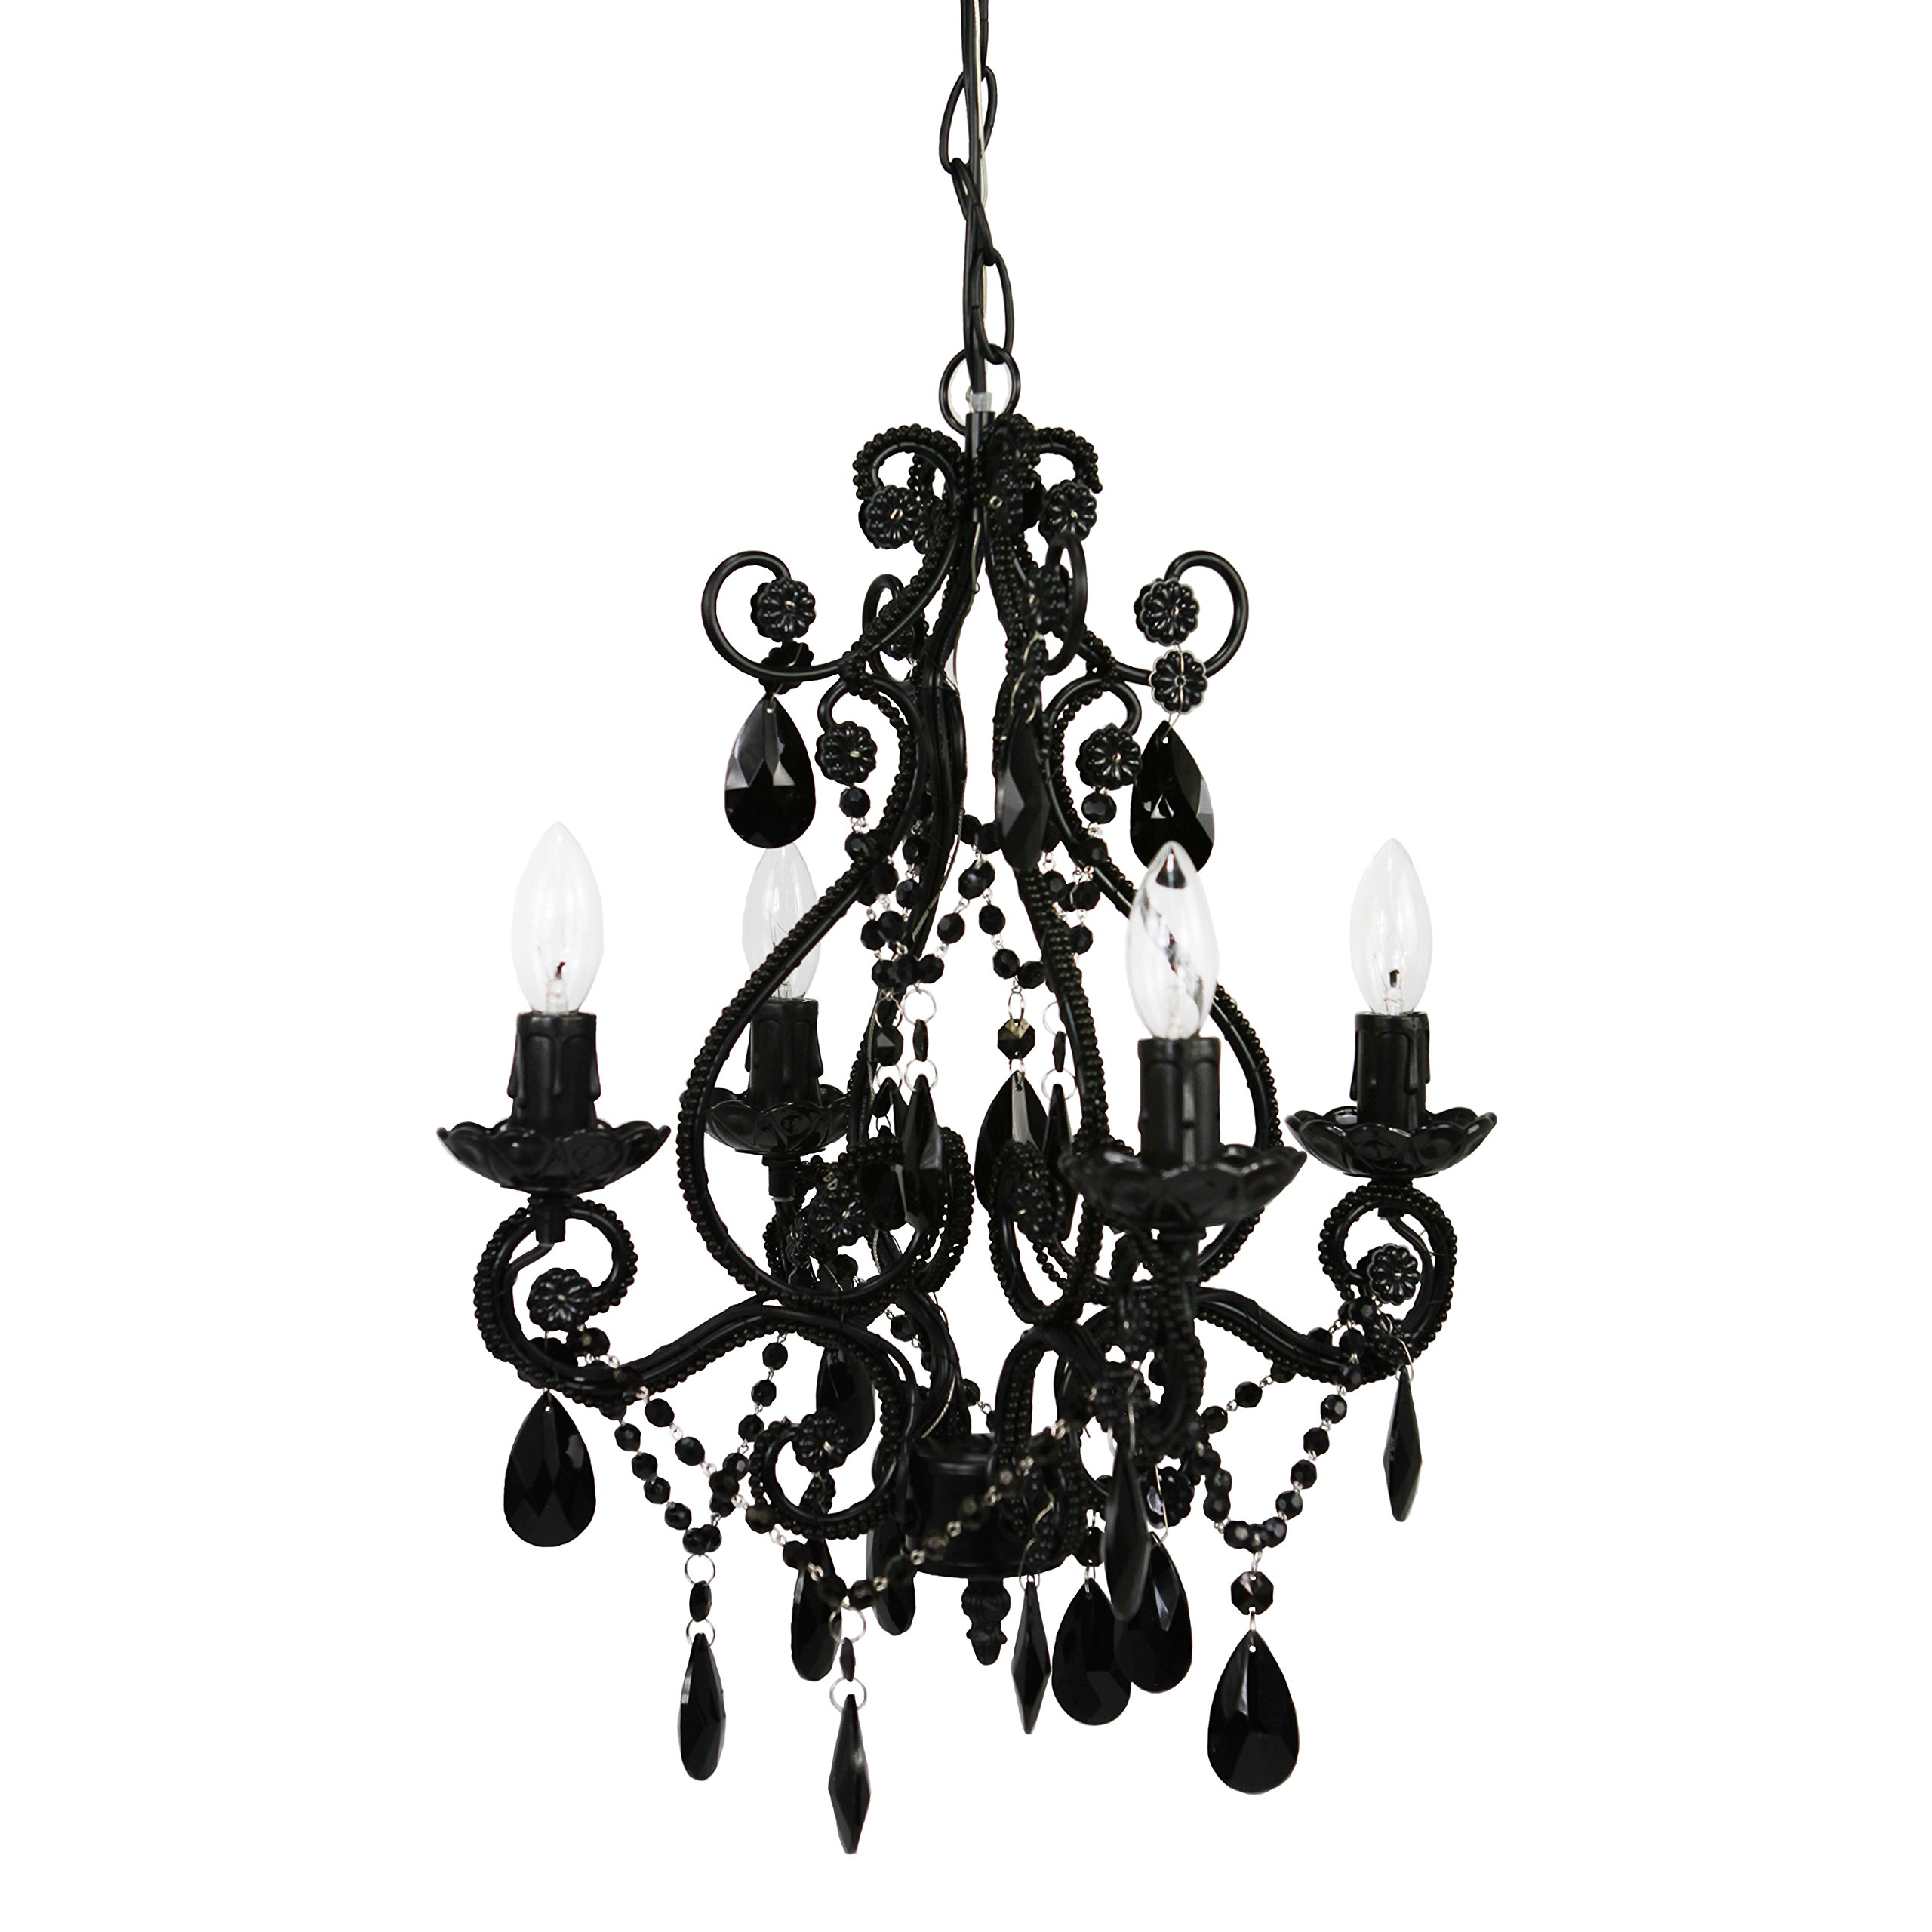 small girly single styles unusual shelf curtain table lowes colors bed breathtaking and chandeliers charming tadpoles chandelier chandel with white plus for elegant girls room floor barn wondrous pink bedroom enticing mount pottery cute curtains mini laminate